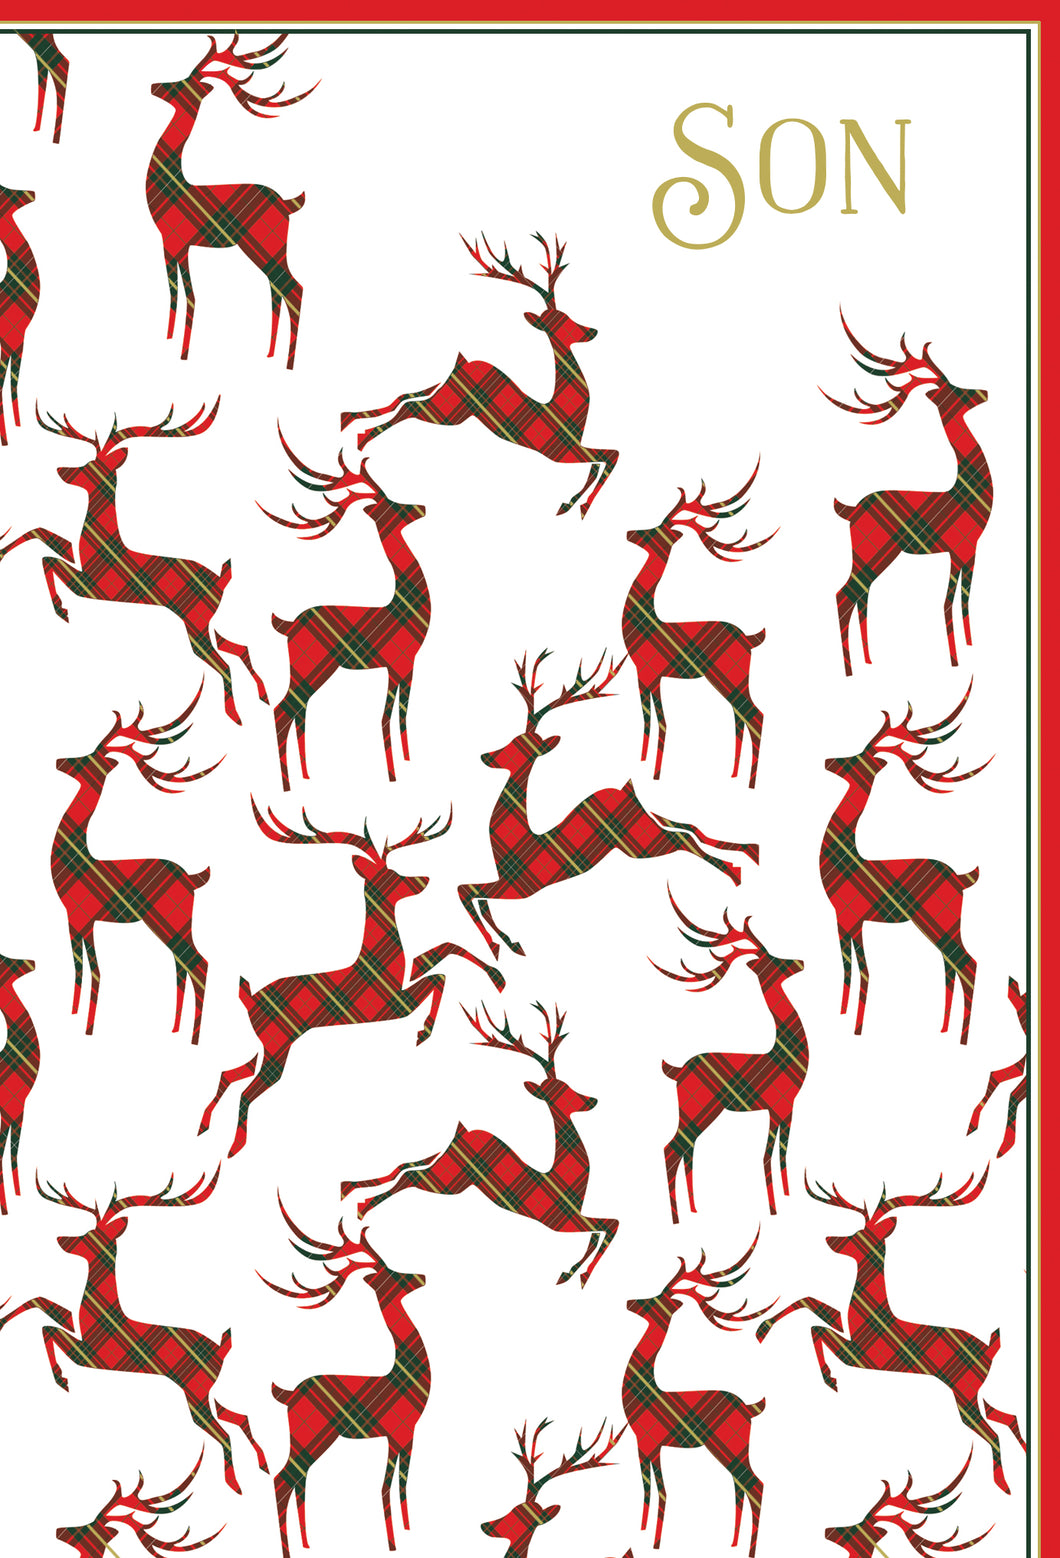 Reindeers - Christmas Card - Son